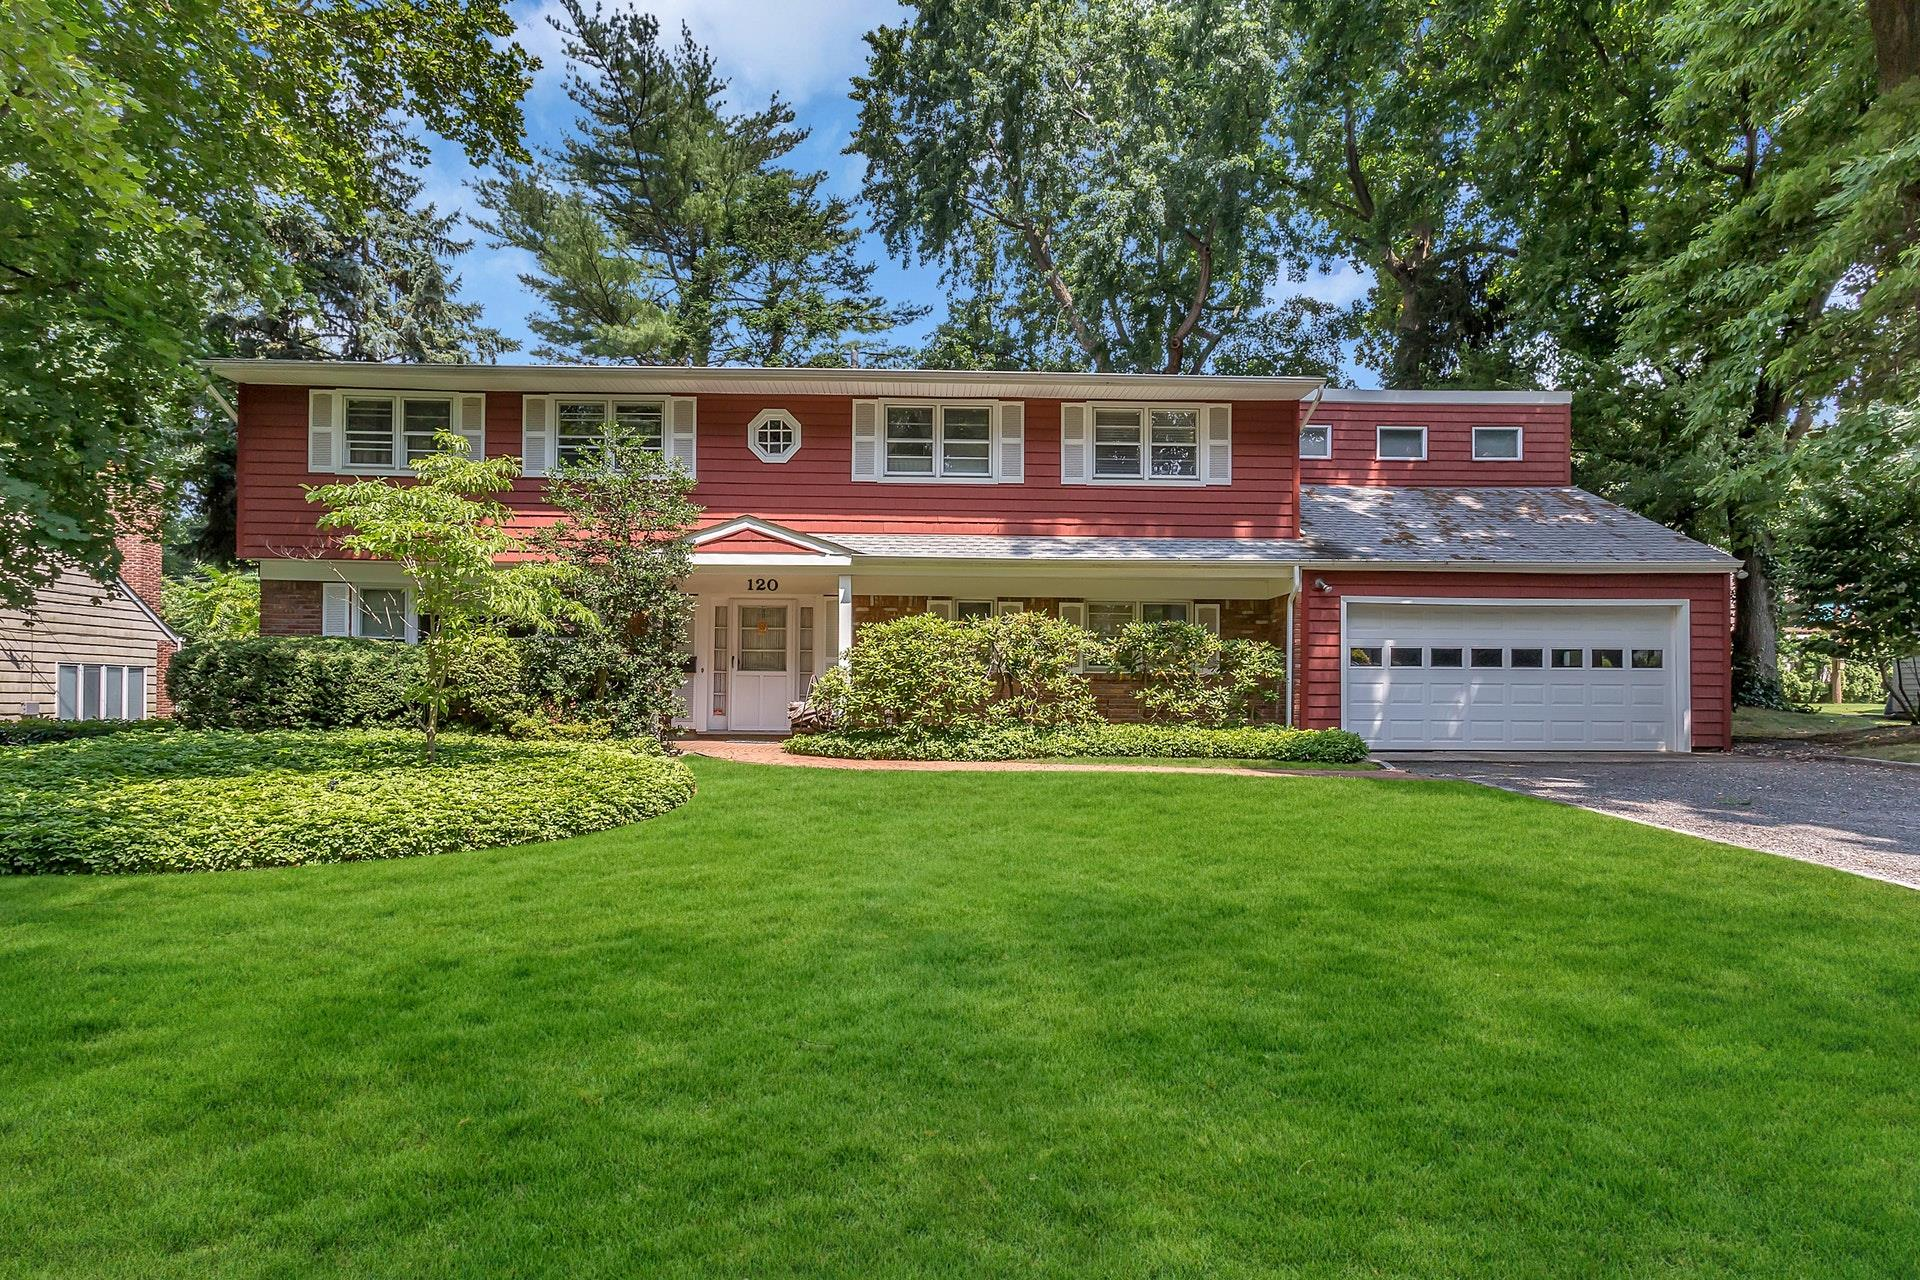 120 Chestnut Rd - Manhasset, New York